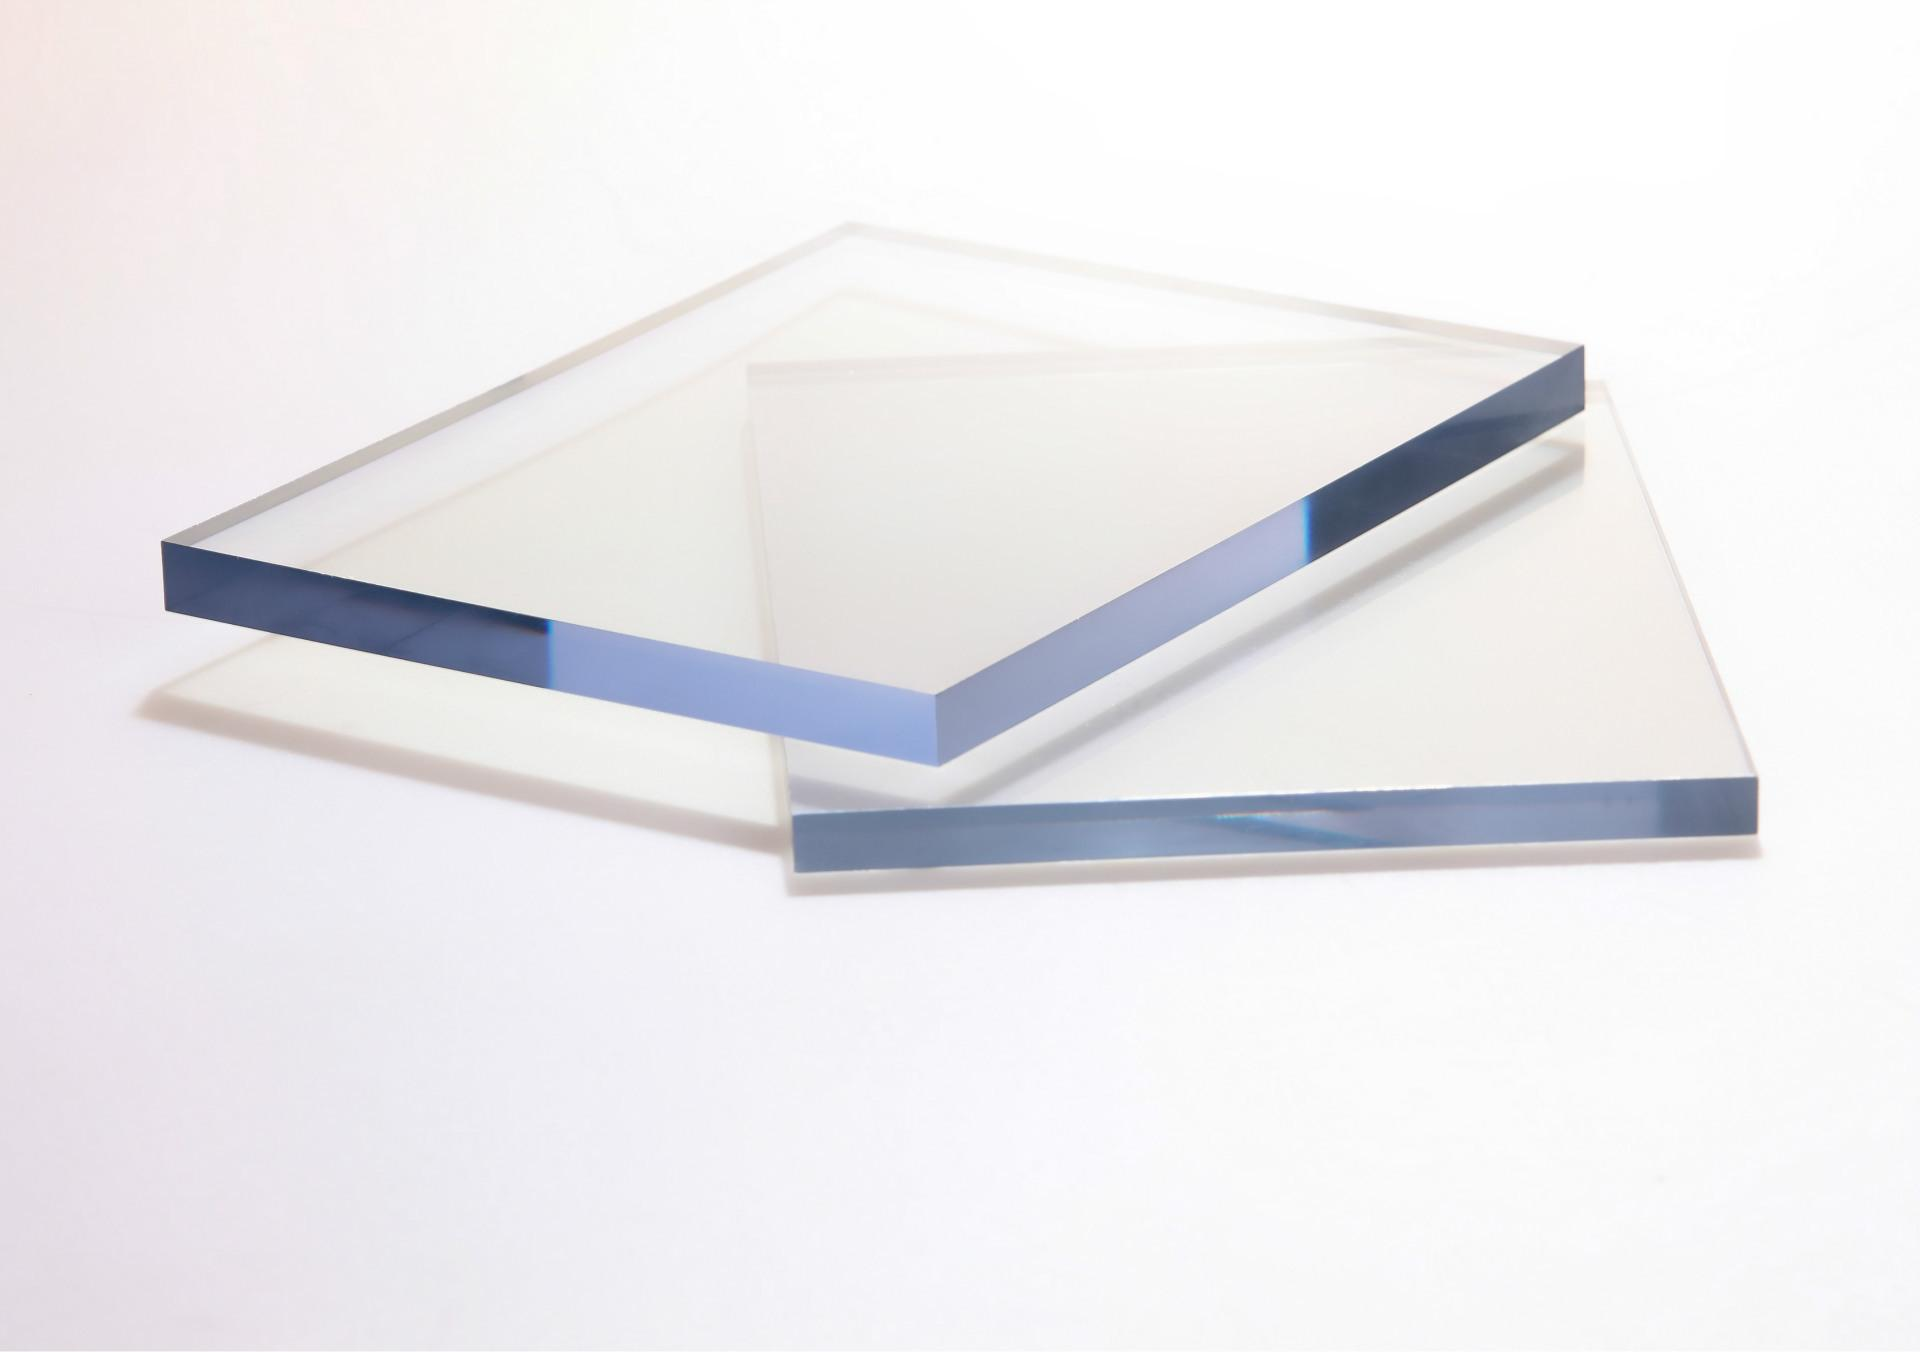 Unbreakable Crystal Clear Polished Surface UV Stabilized Polycarbonate Sheet Panel